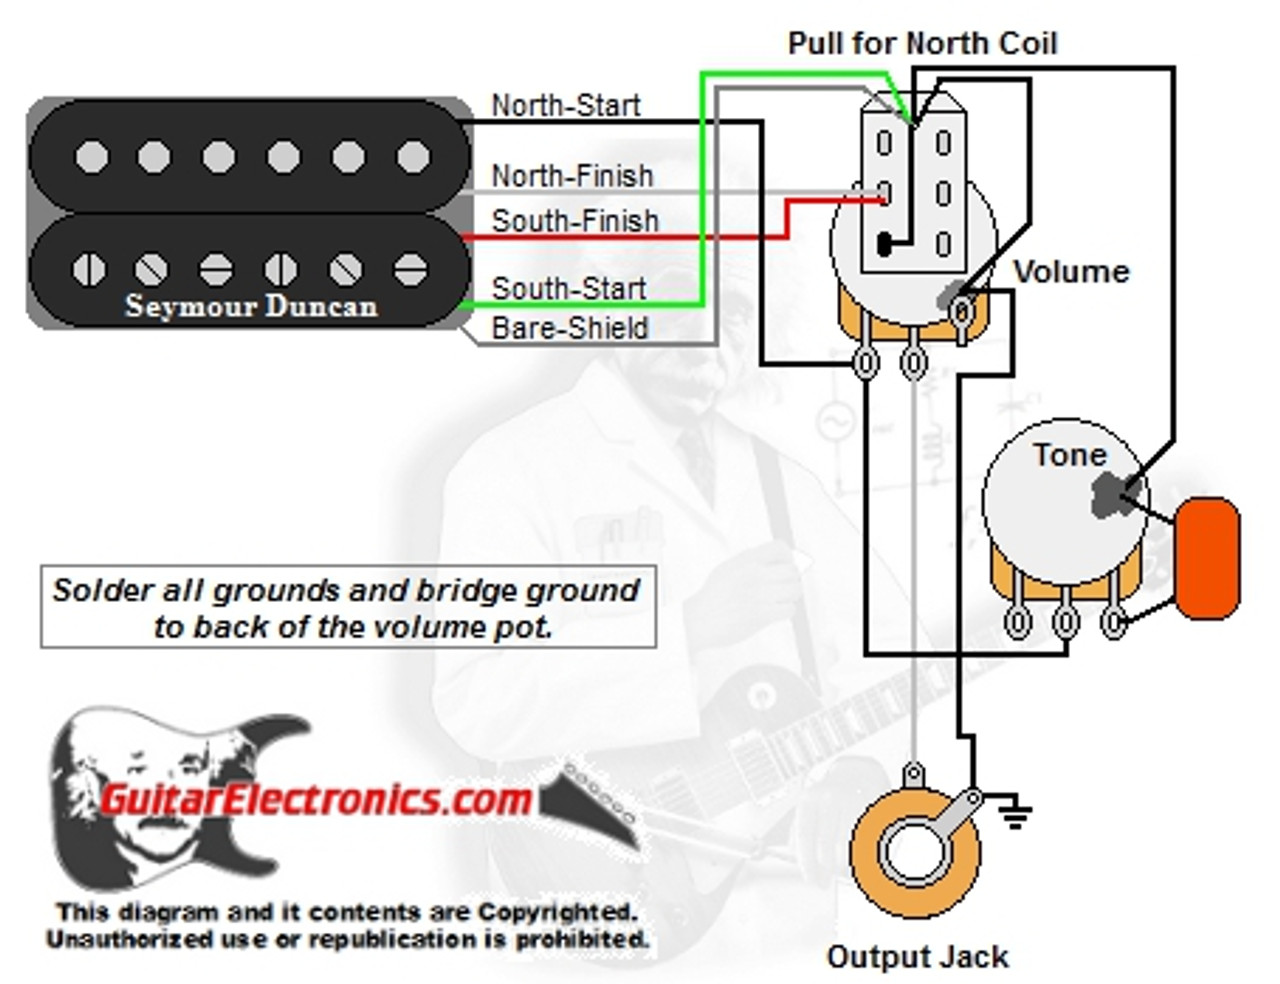 1 humbucker 1 volume 1tone pull for north single coil one single coil 1 volume wiring diagram [ 1280 x 984 Pixel ]